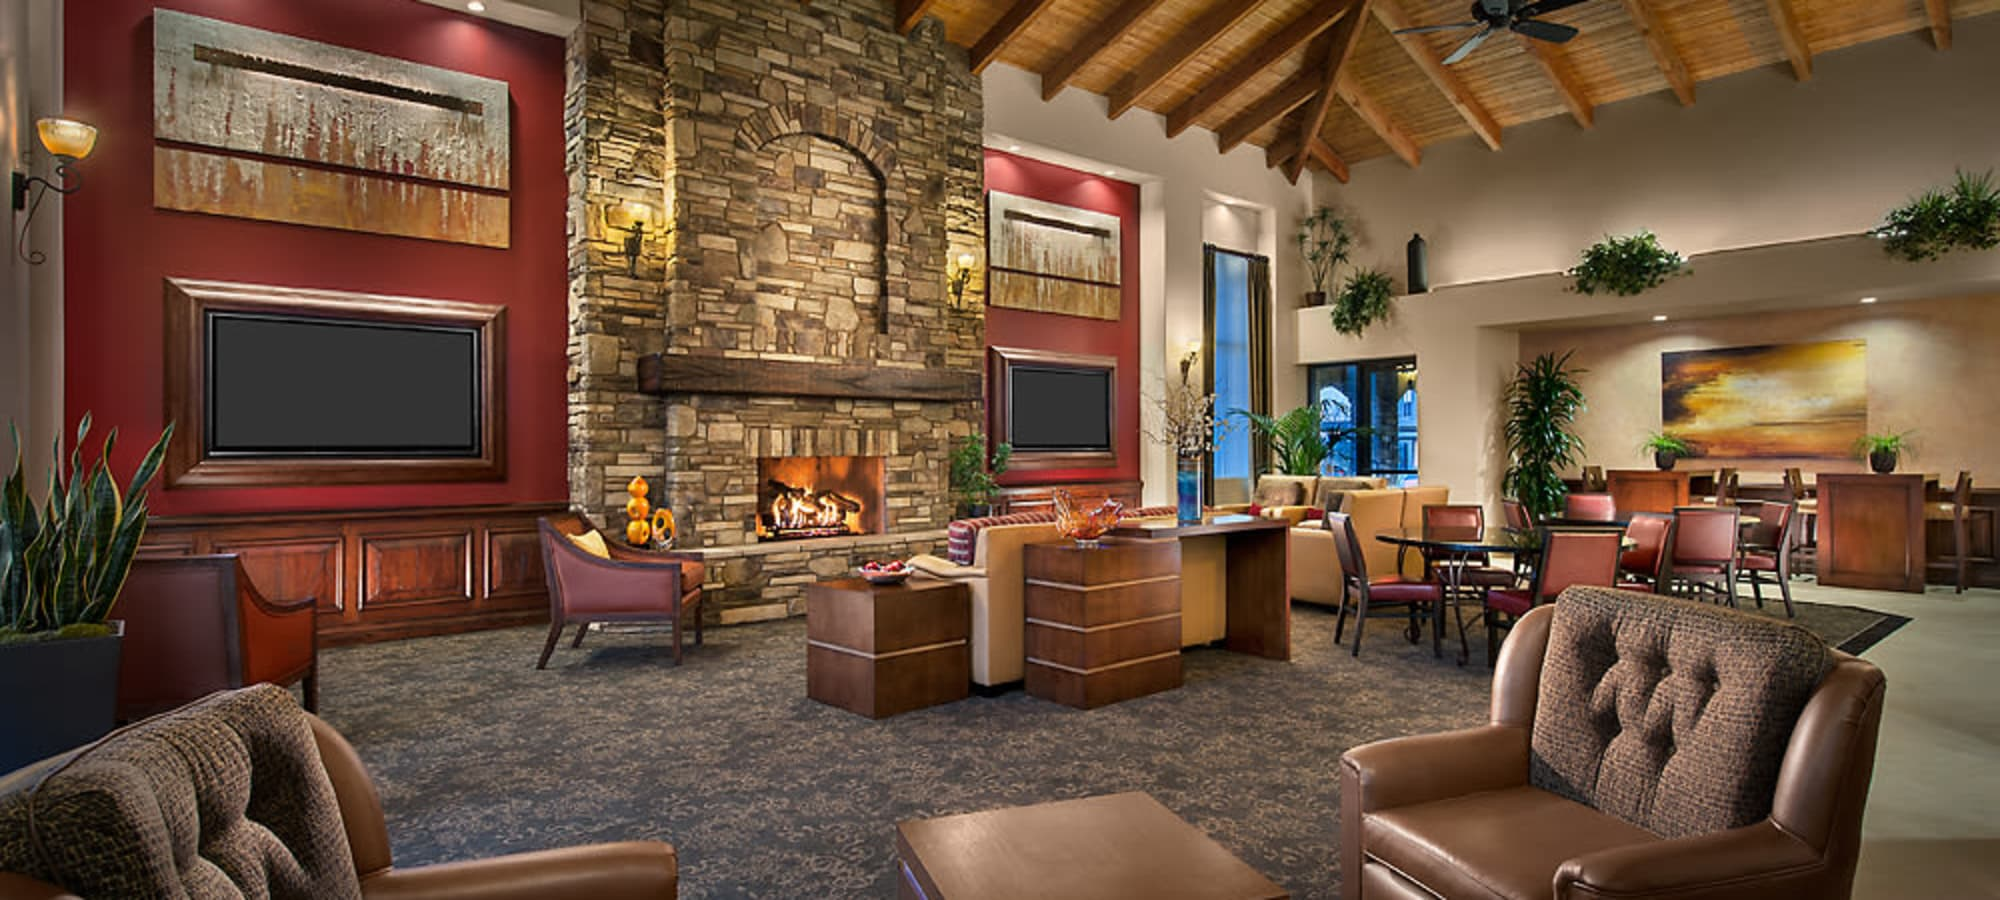 Community clubhouse at San Norterra in Phoenix, Arizona